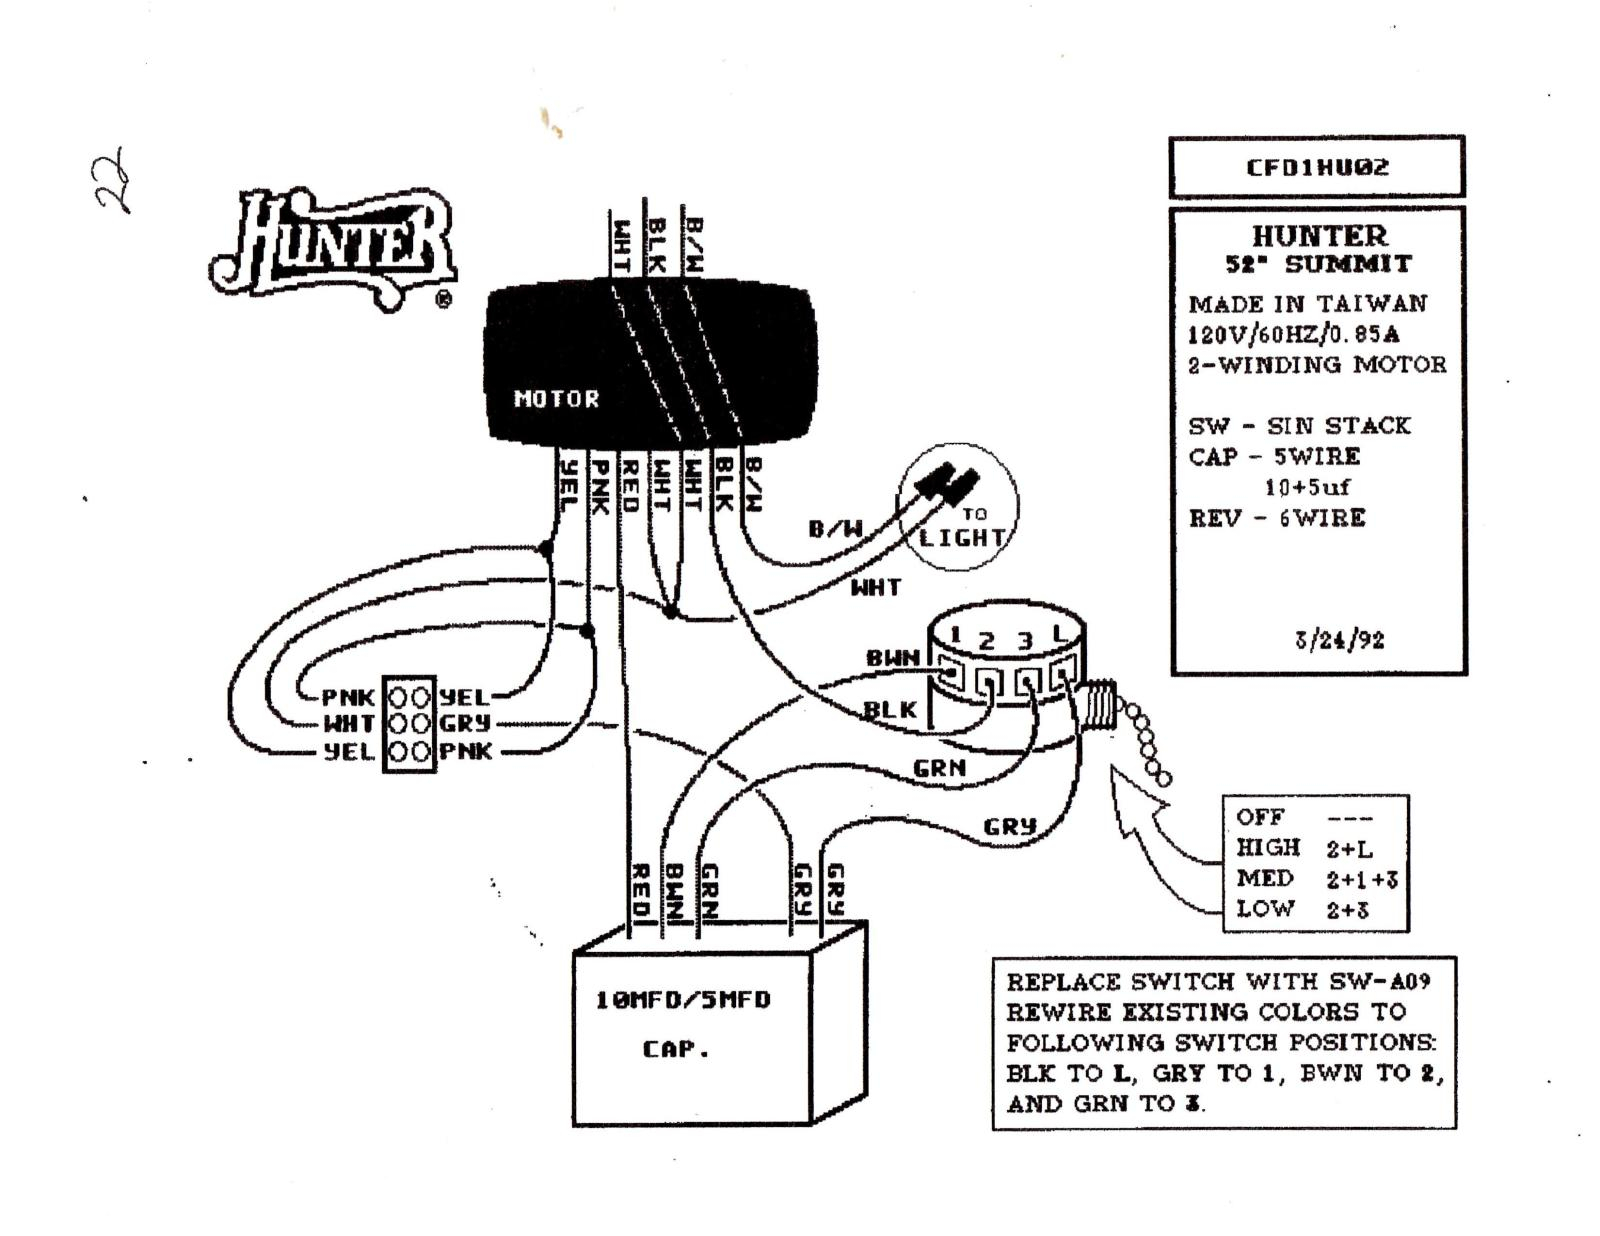 fan speed switch wiring diagram